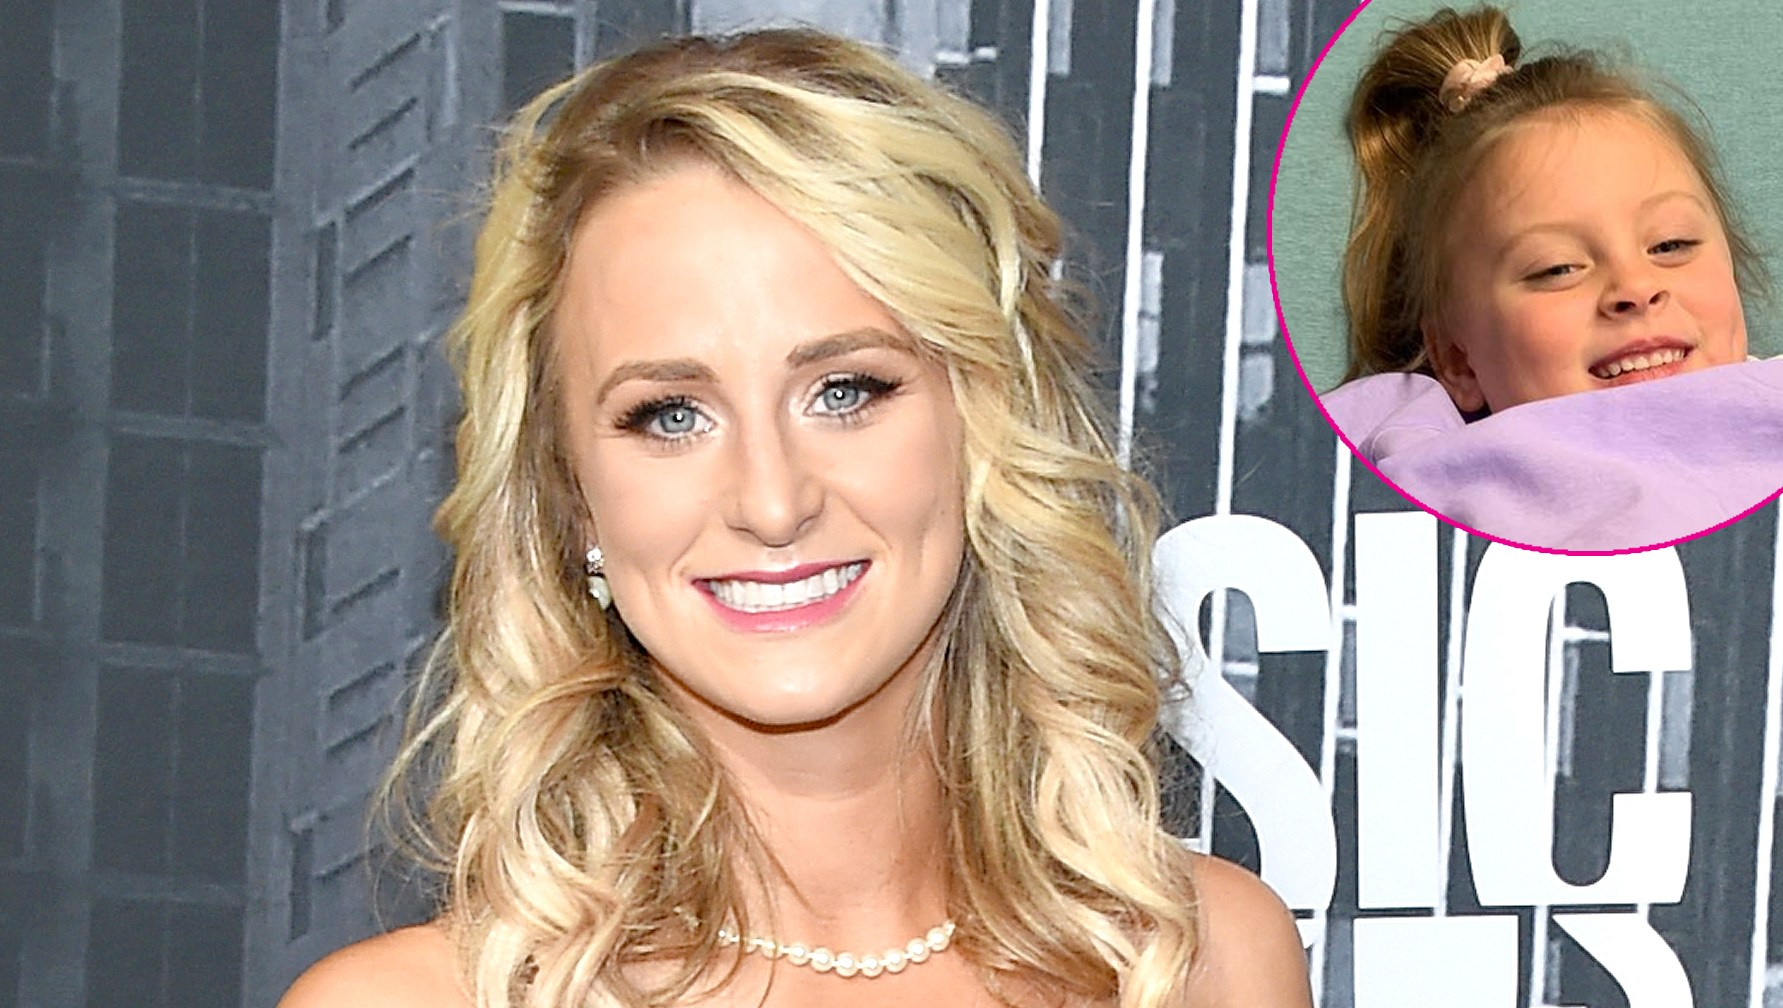 Leah-Messer-Updates-Fans-on-Her-Daughter-Adalynn's-Health